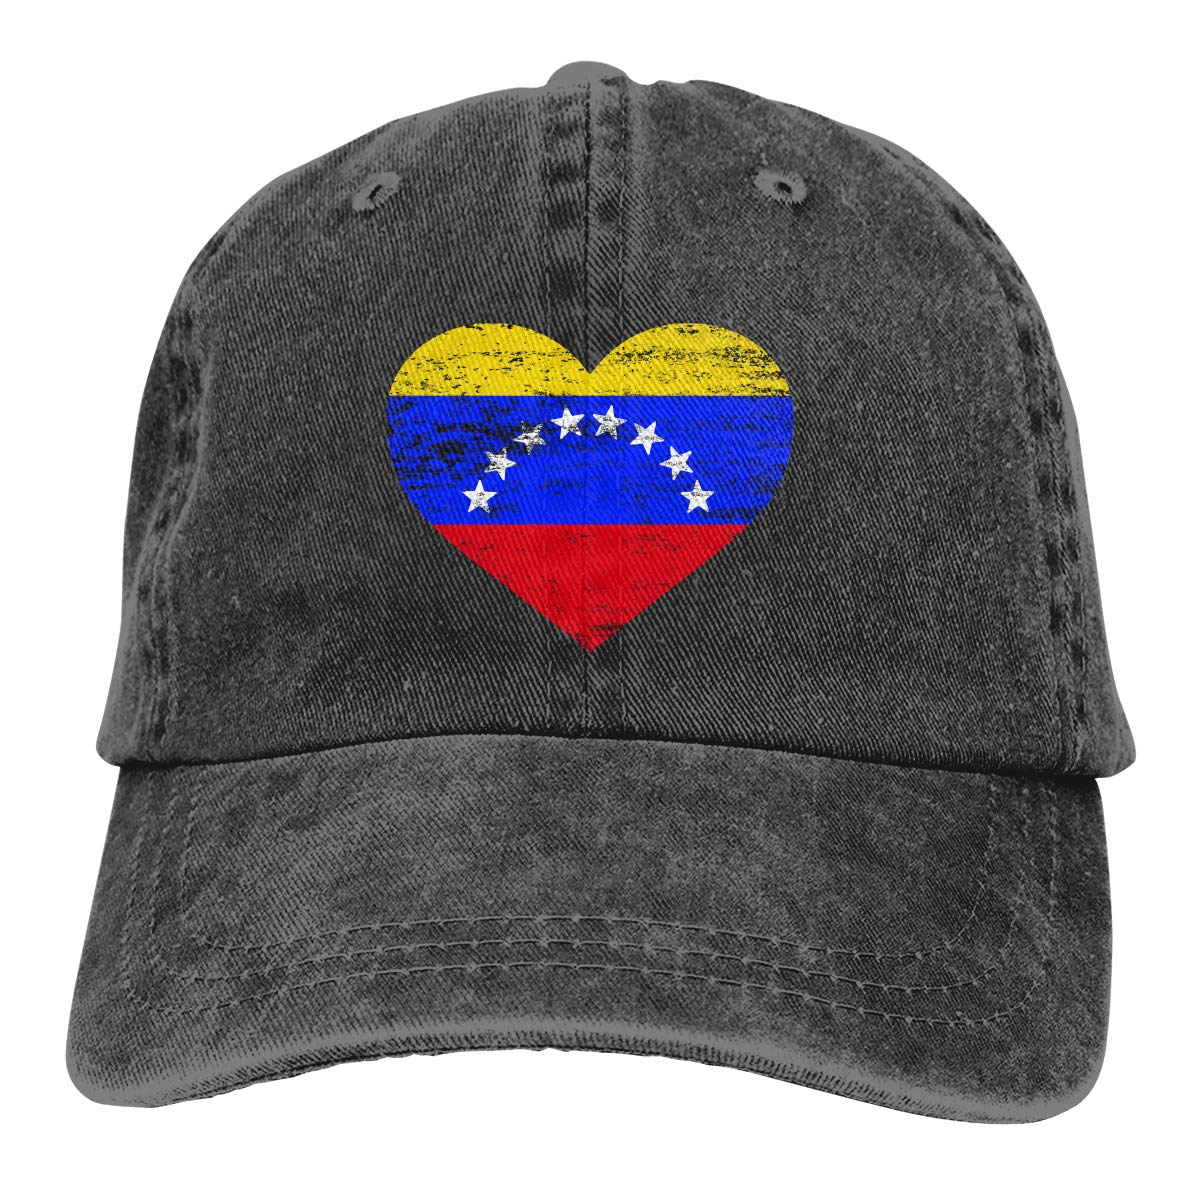 Unisex Venezuela Heart Shaped Flag Vintage Washed Dad Hat Cute Adjustable Baseball Cap